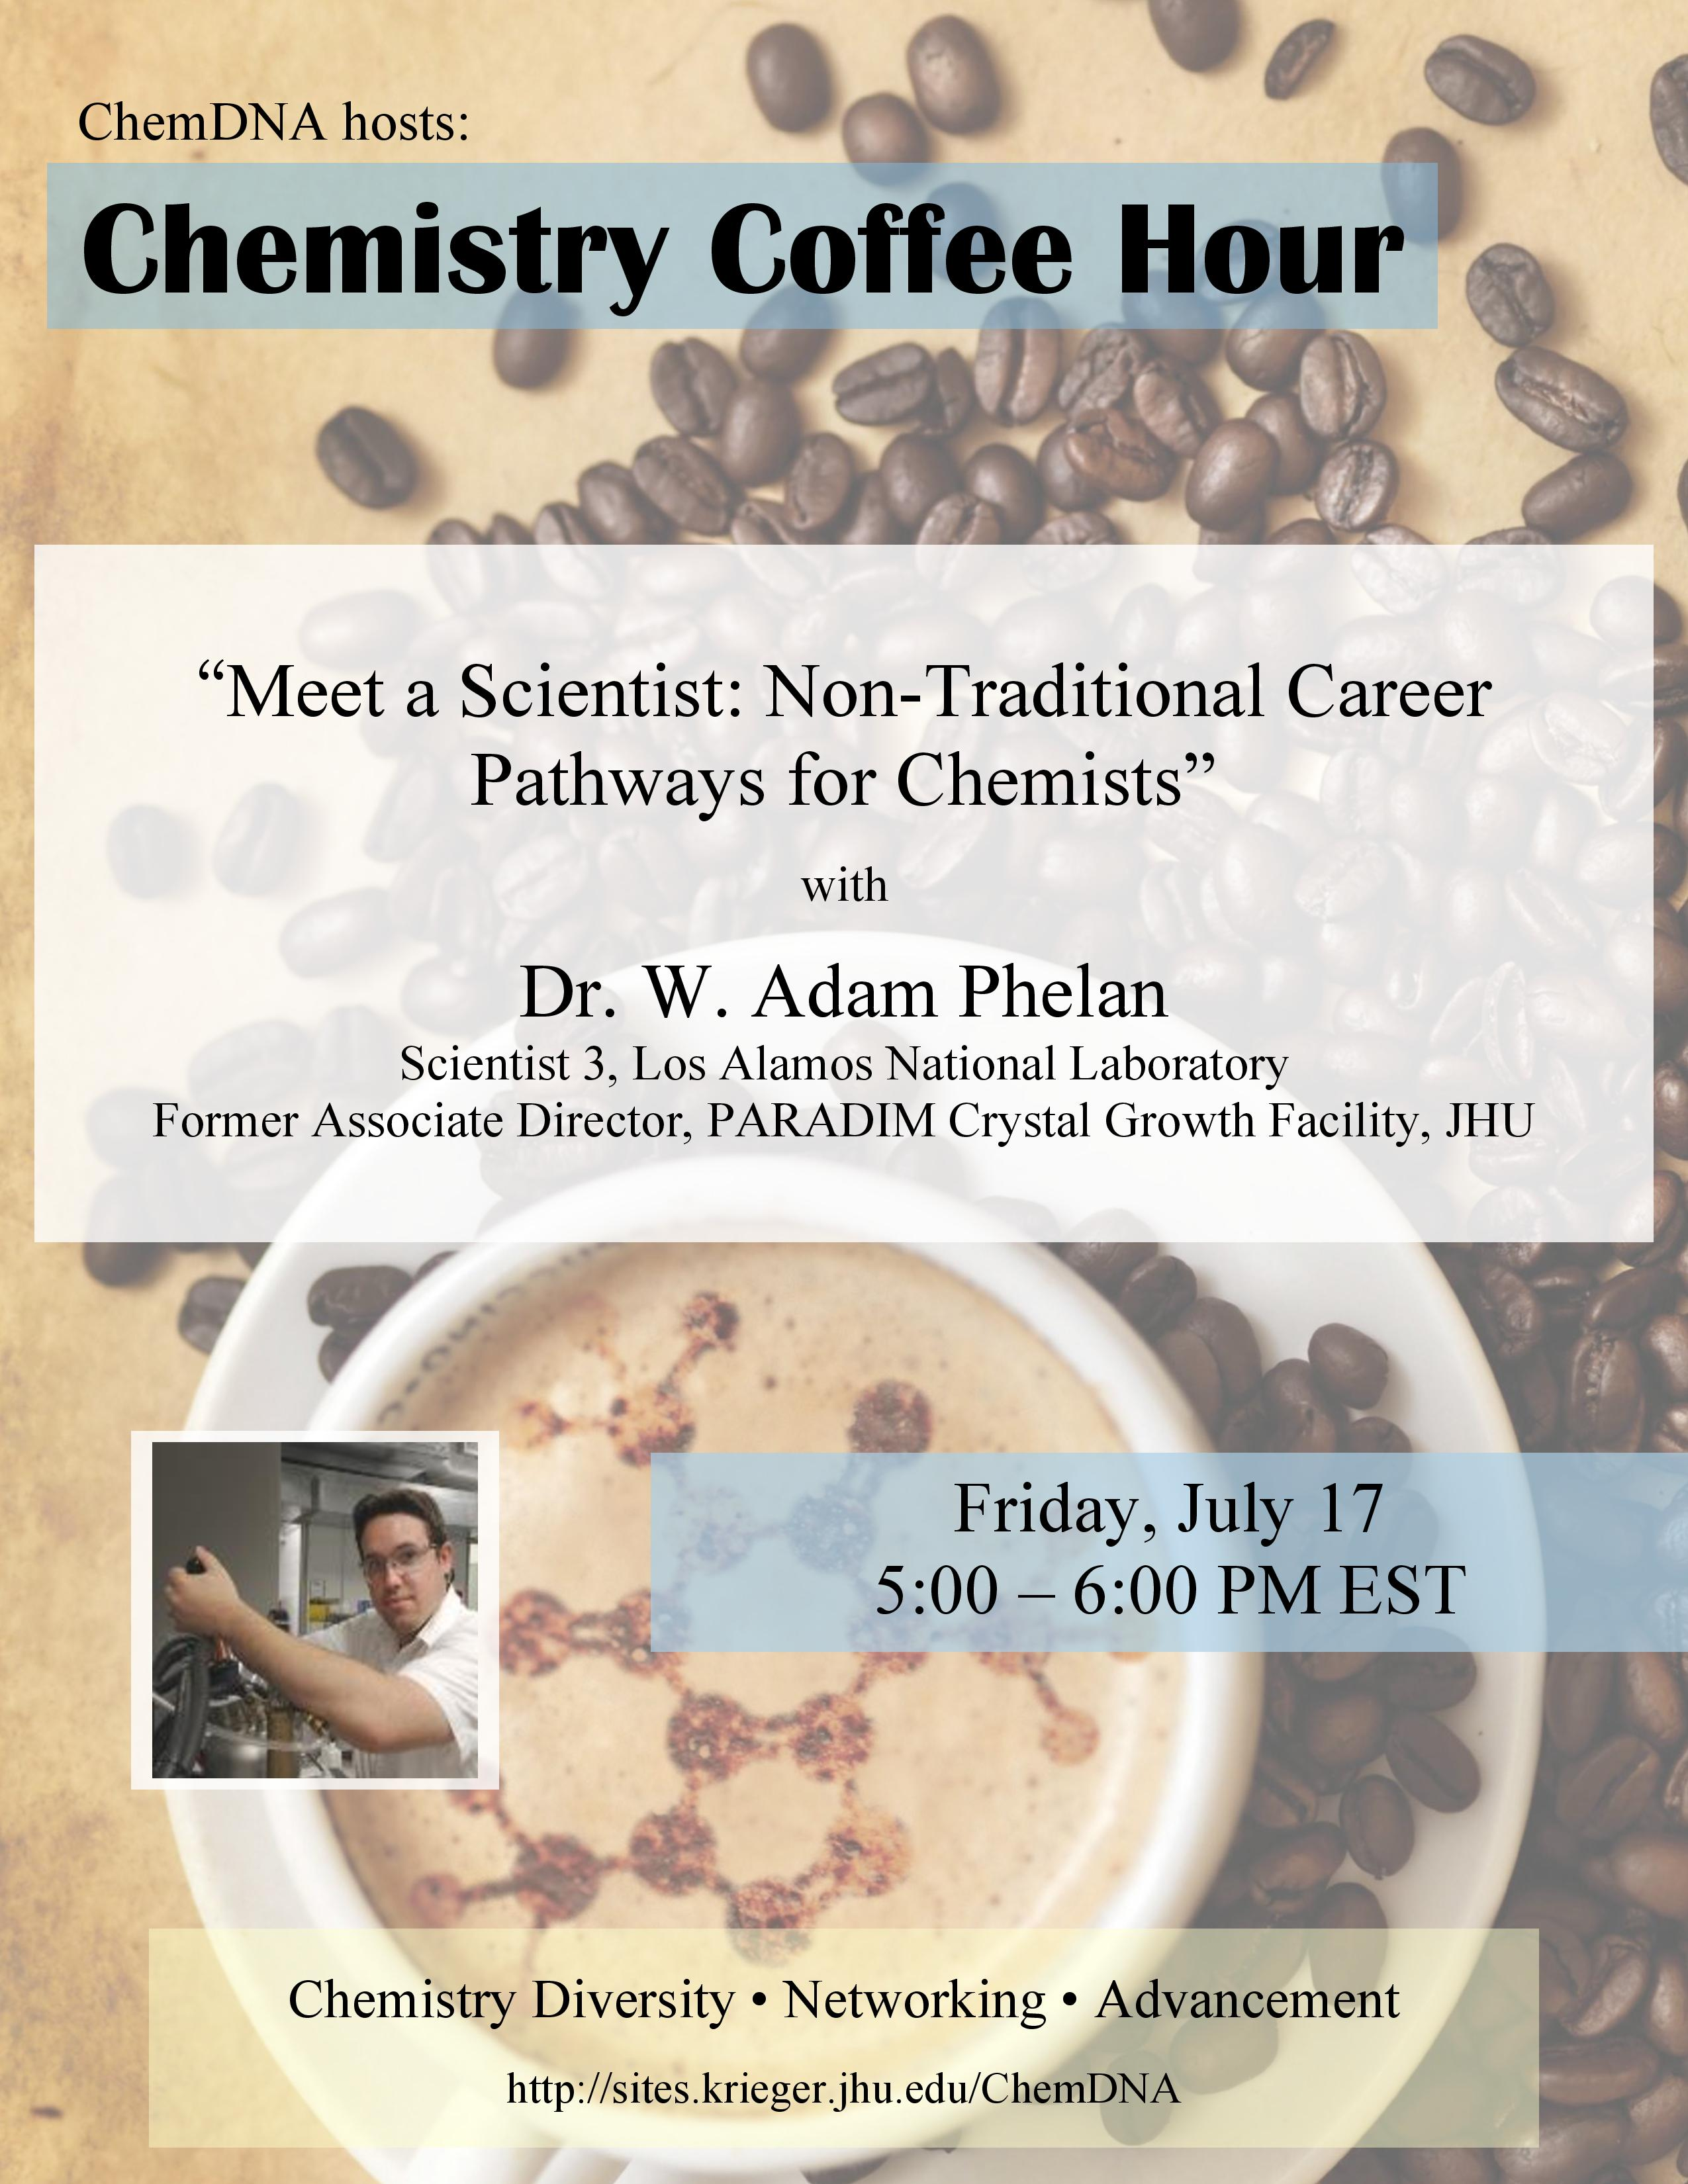 Flyer announcing Dr. W. Adam Phelan as the guest for the july coffee hour